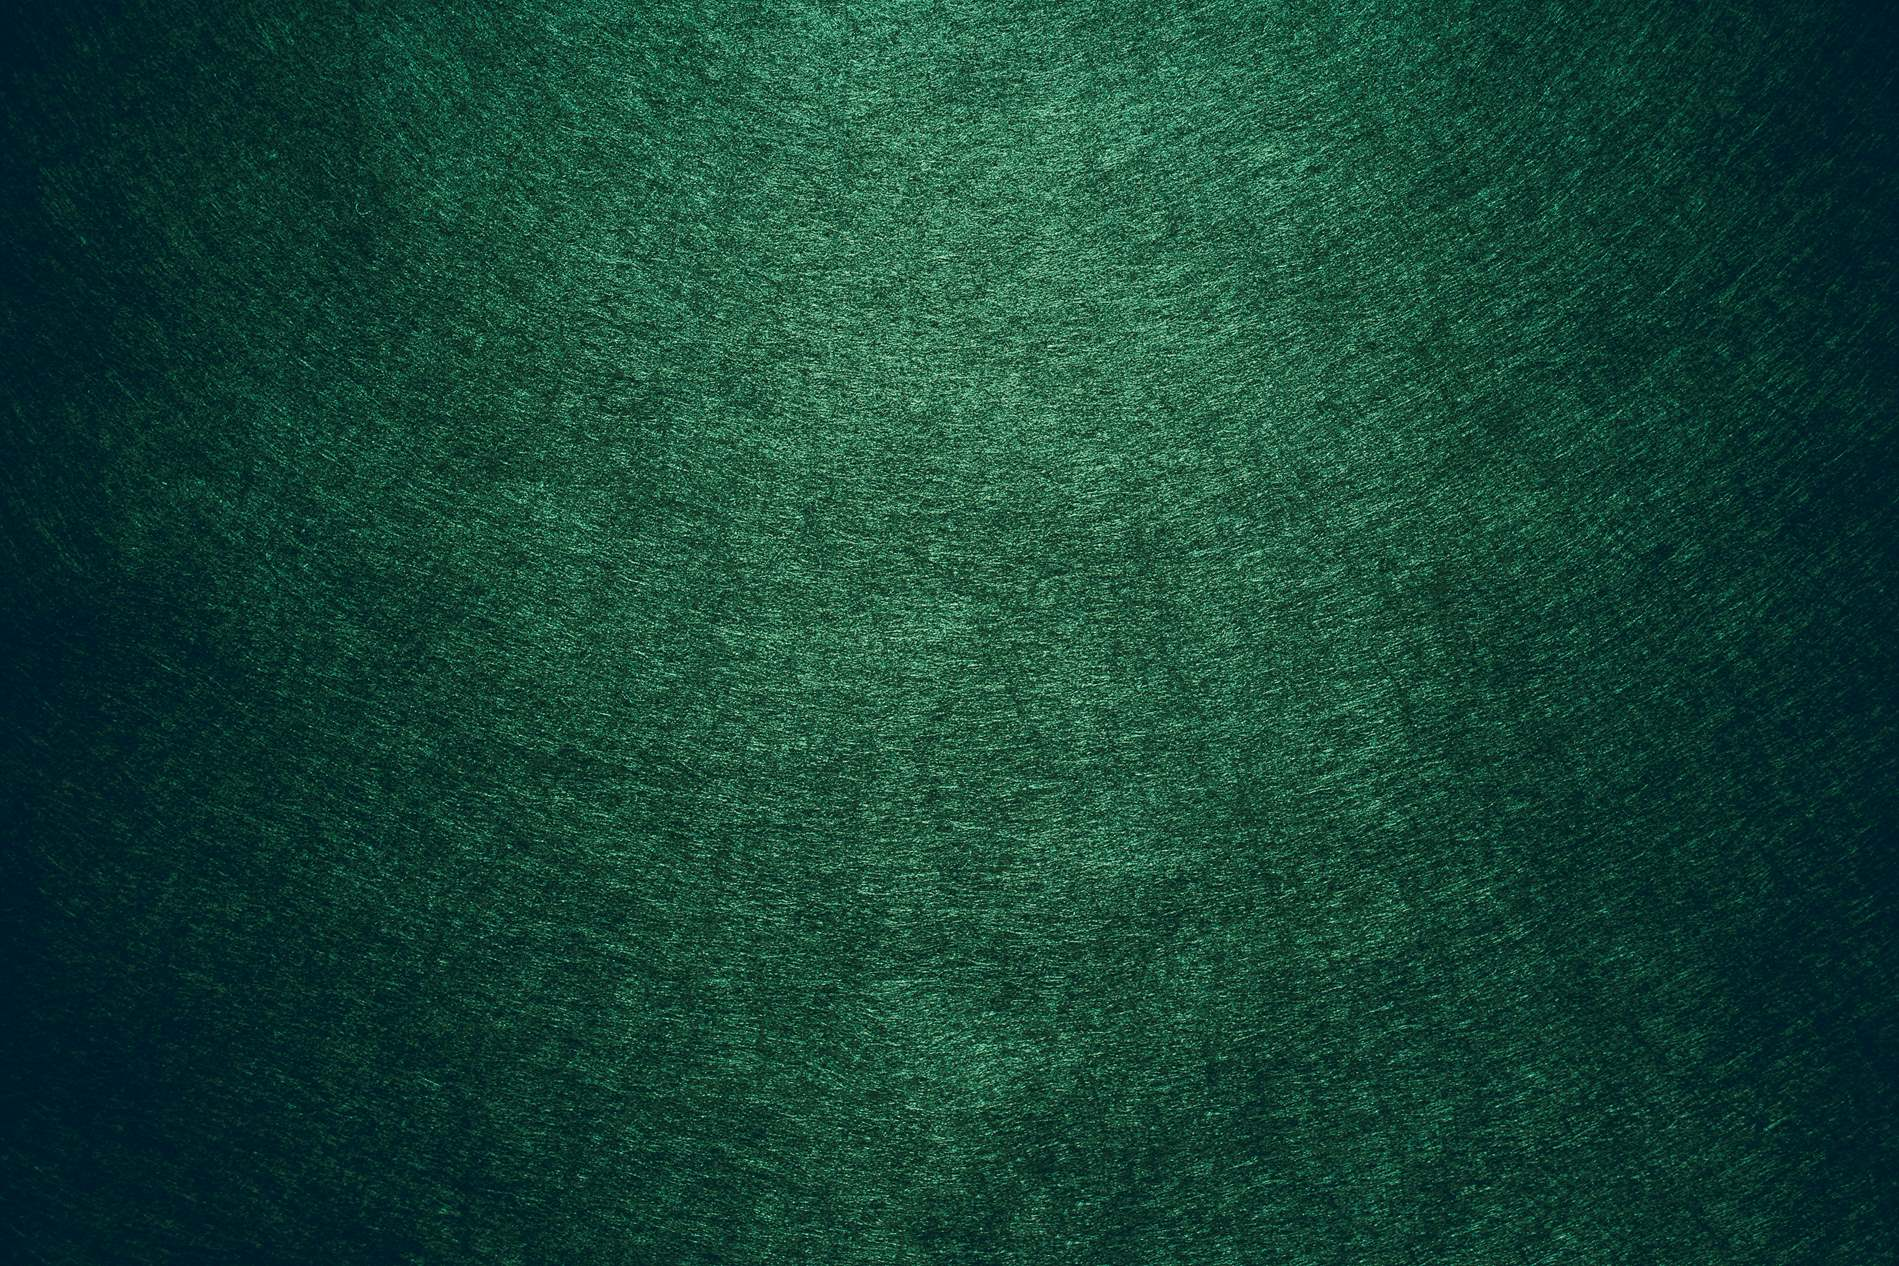 Green Velvet Fabric Texture Dark Green Fabric Text...